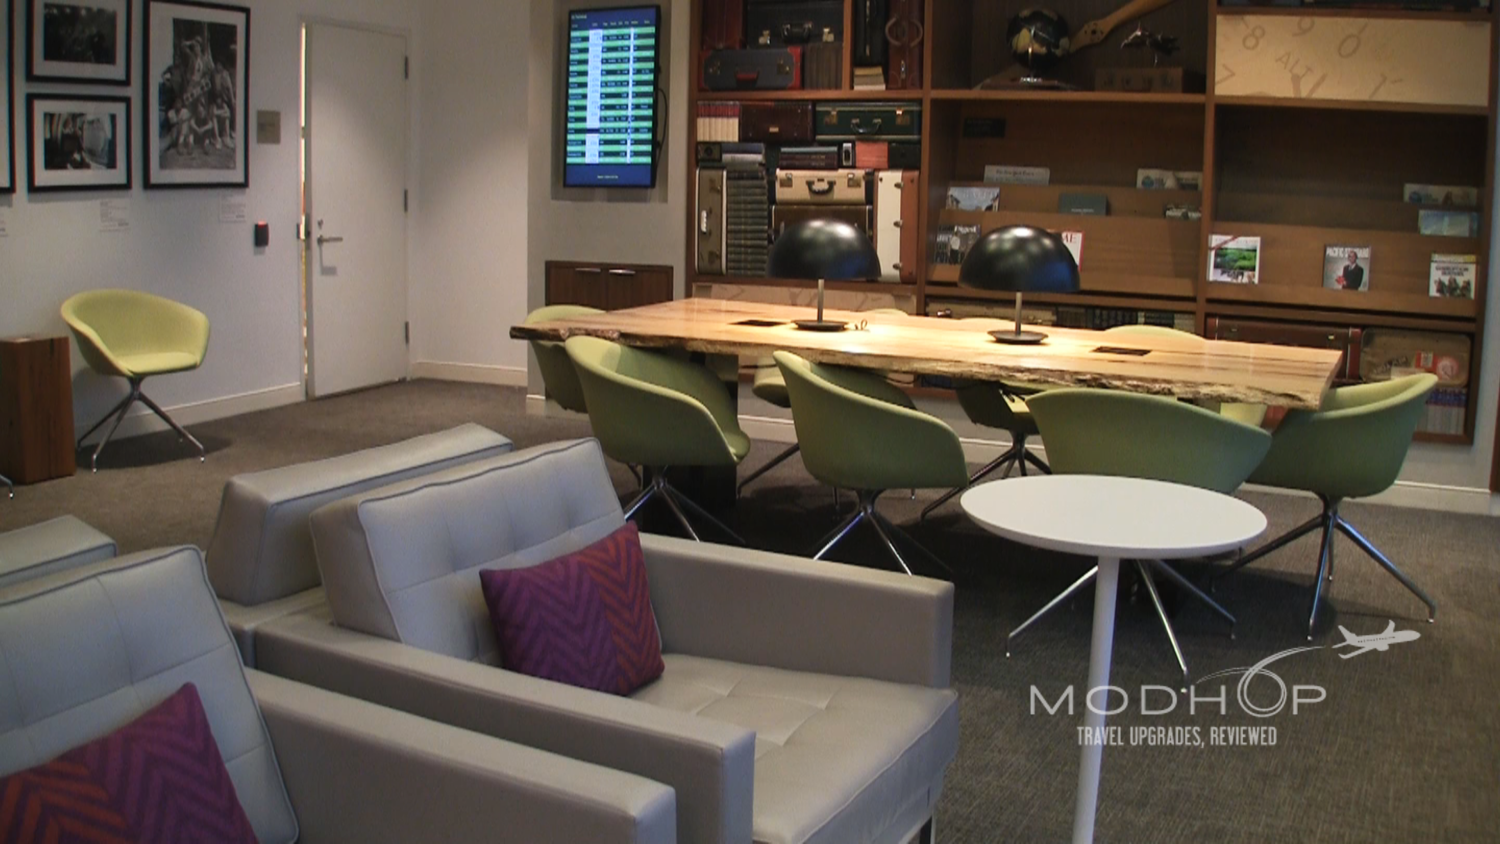 Loungers and Communal table inside this American Express Lounge